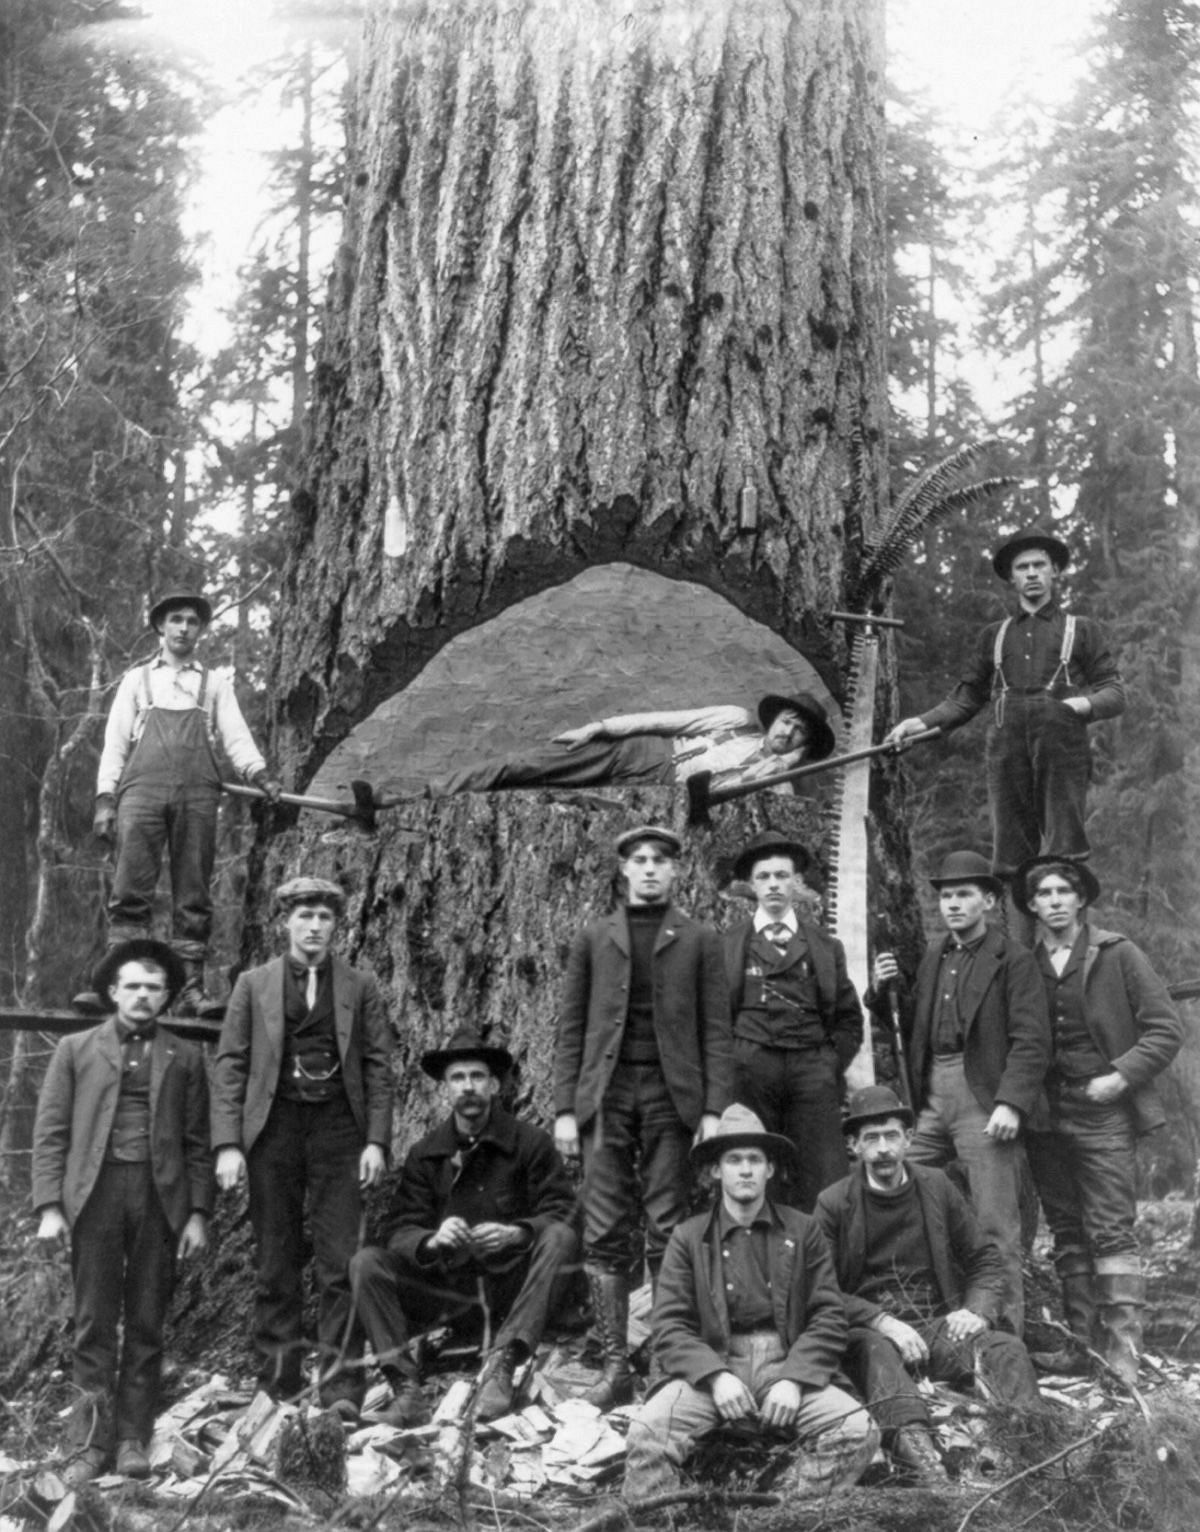 1902  Lumberjacks pose with a fir tree in Washington.  Image: Library of Congress